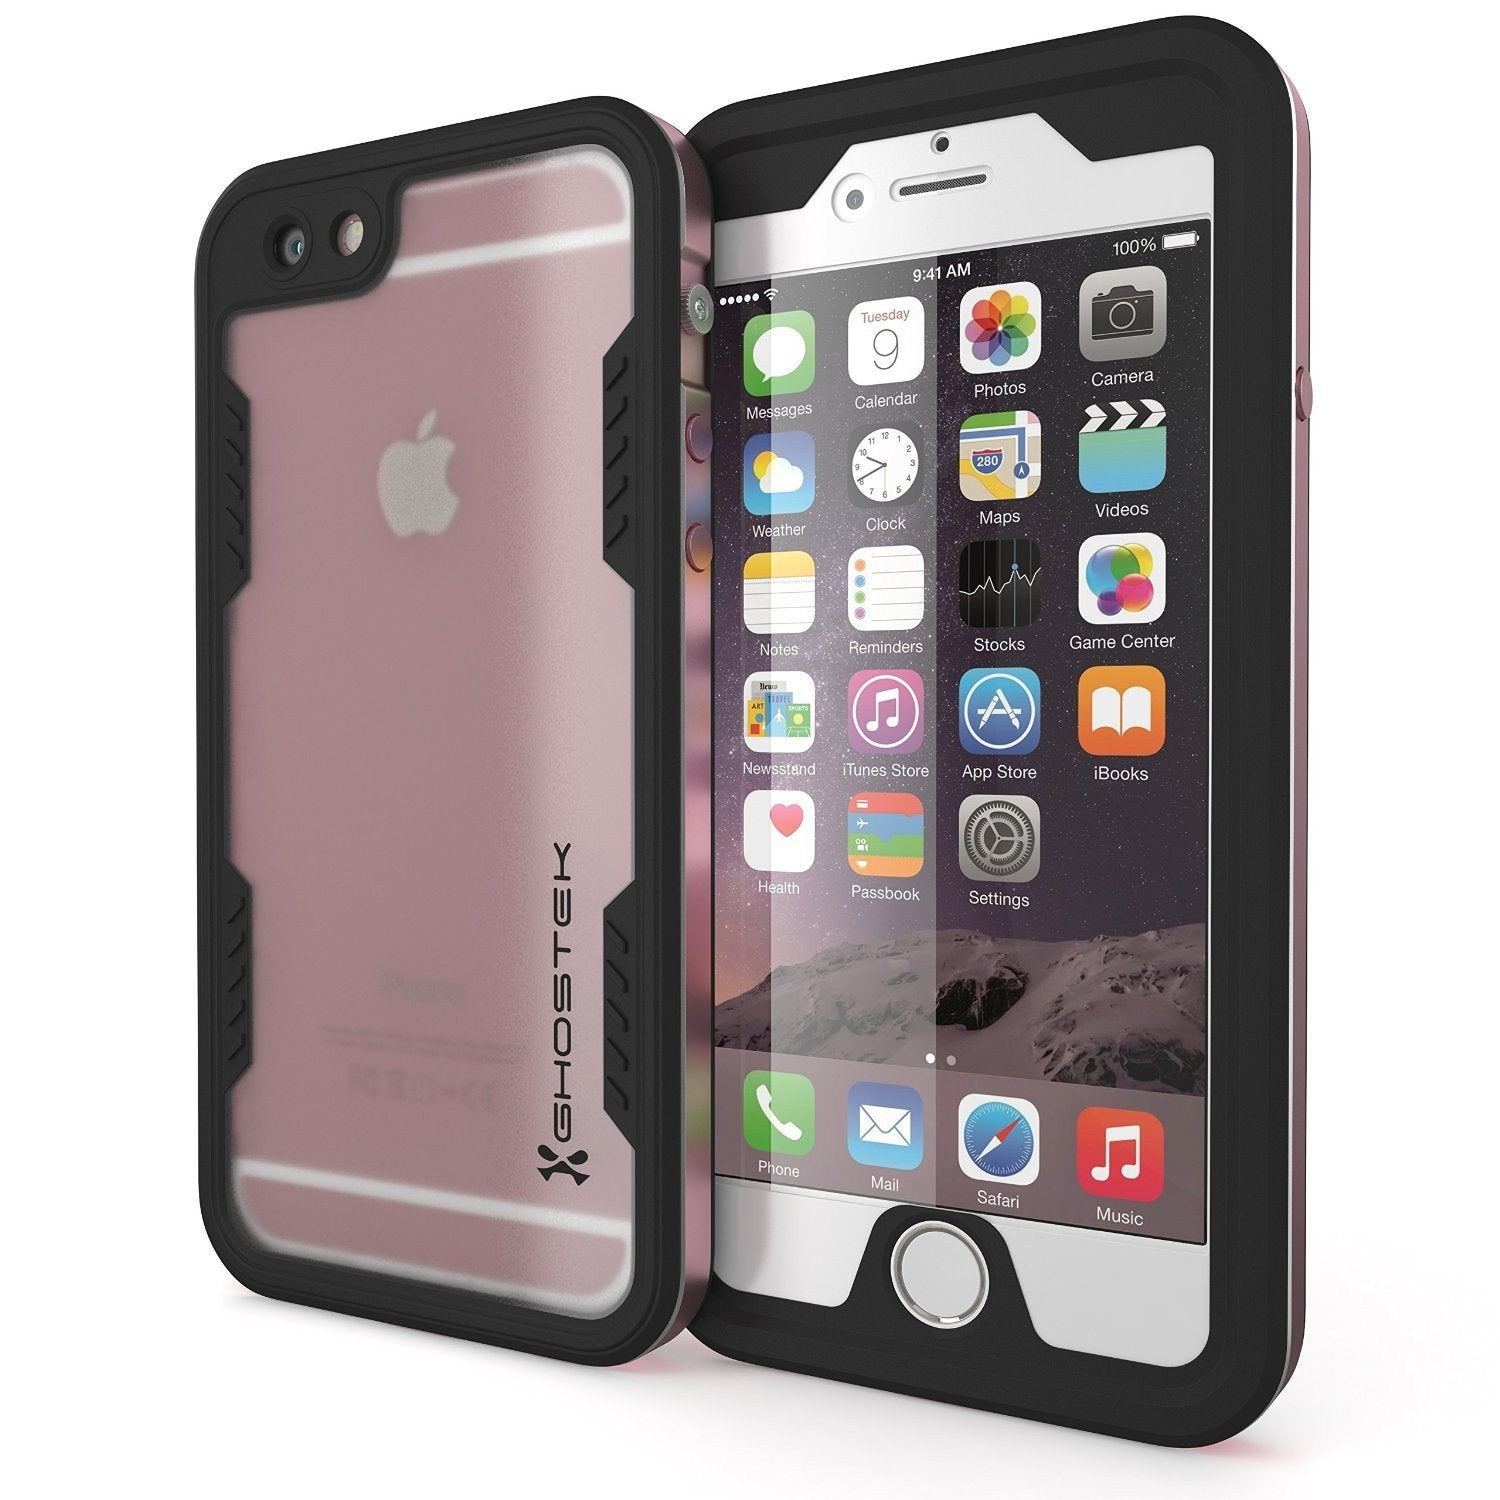 iPhone 6S+/6+ Plus Waterproof Case Ghostek Atomic 2.0 Pink w/ Attached Screen Protector